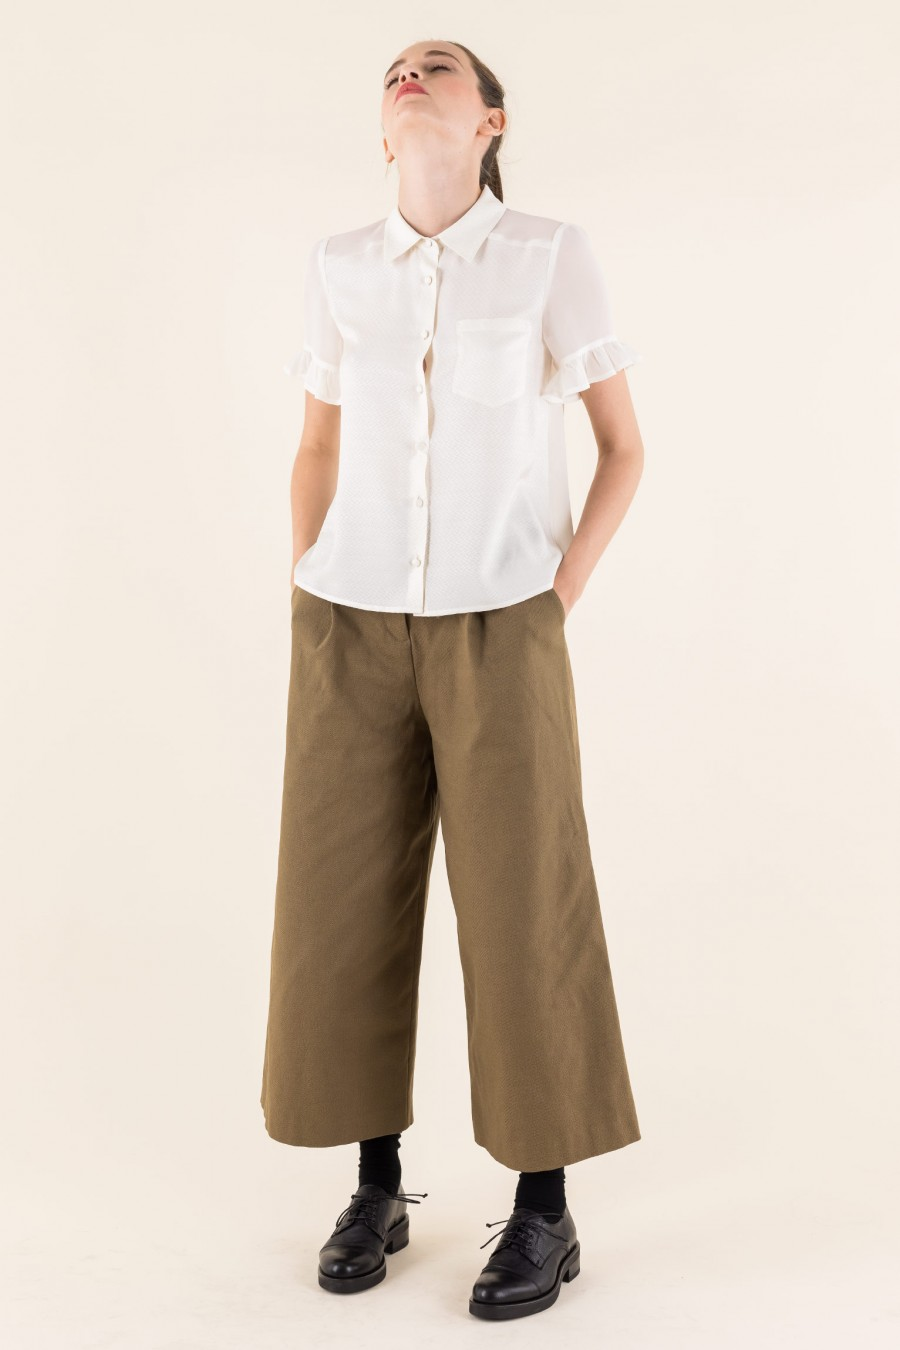 White shirt with short sleeves